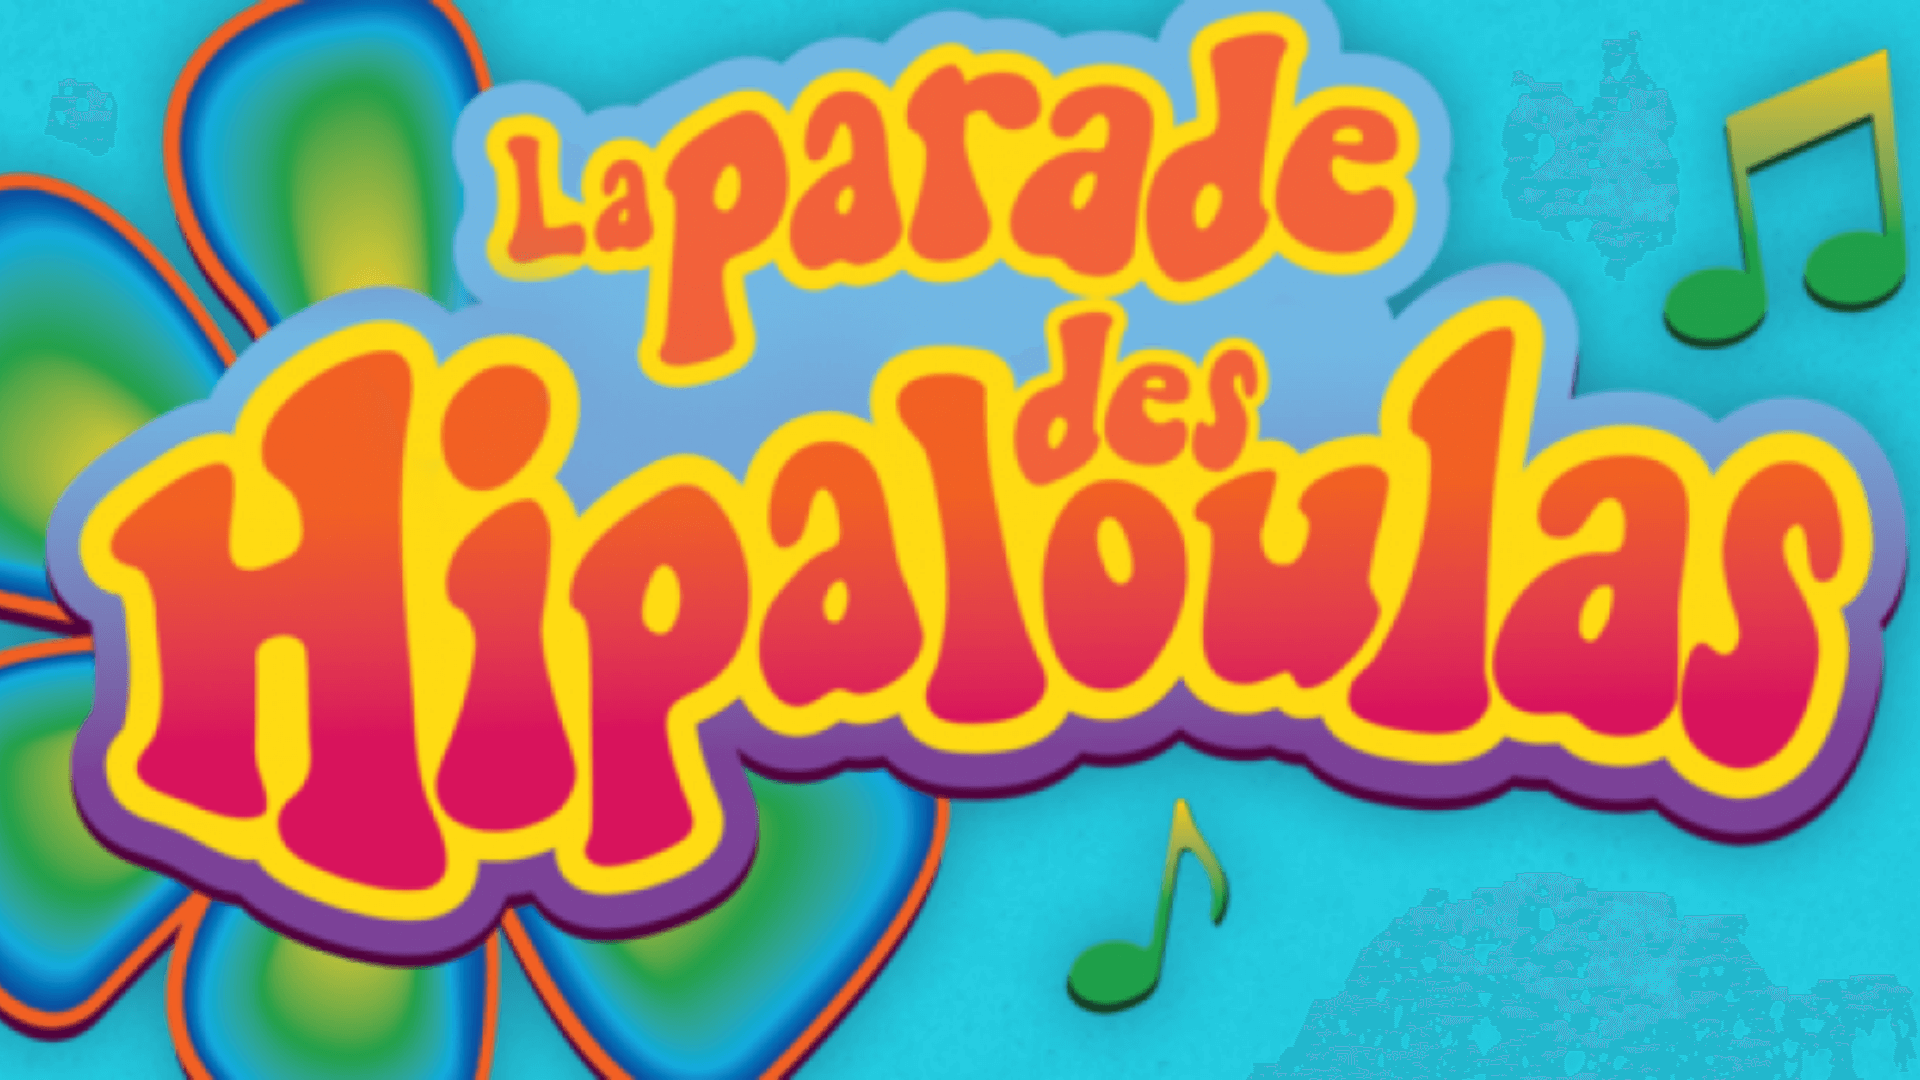 Illustration La parade des Hipaloulas